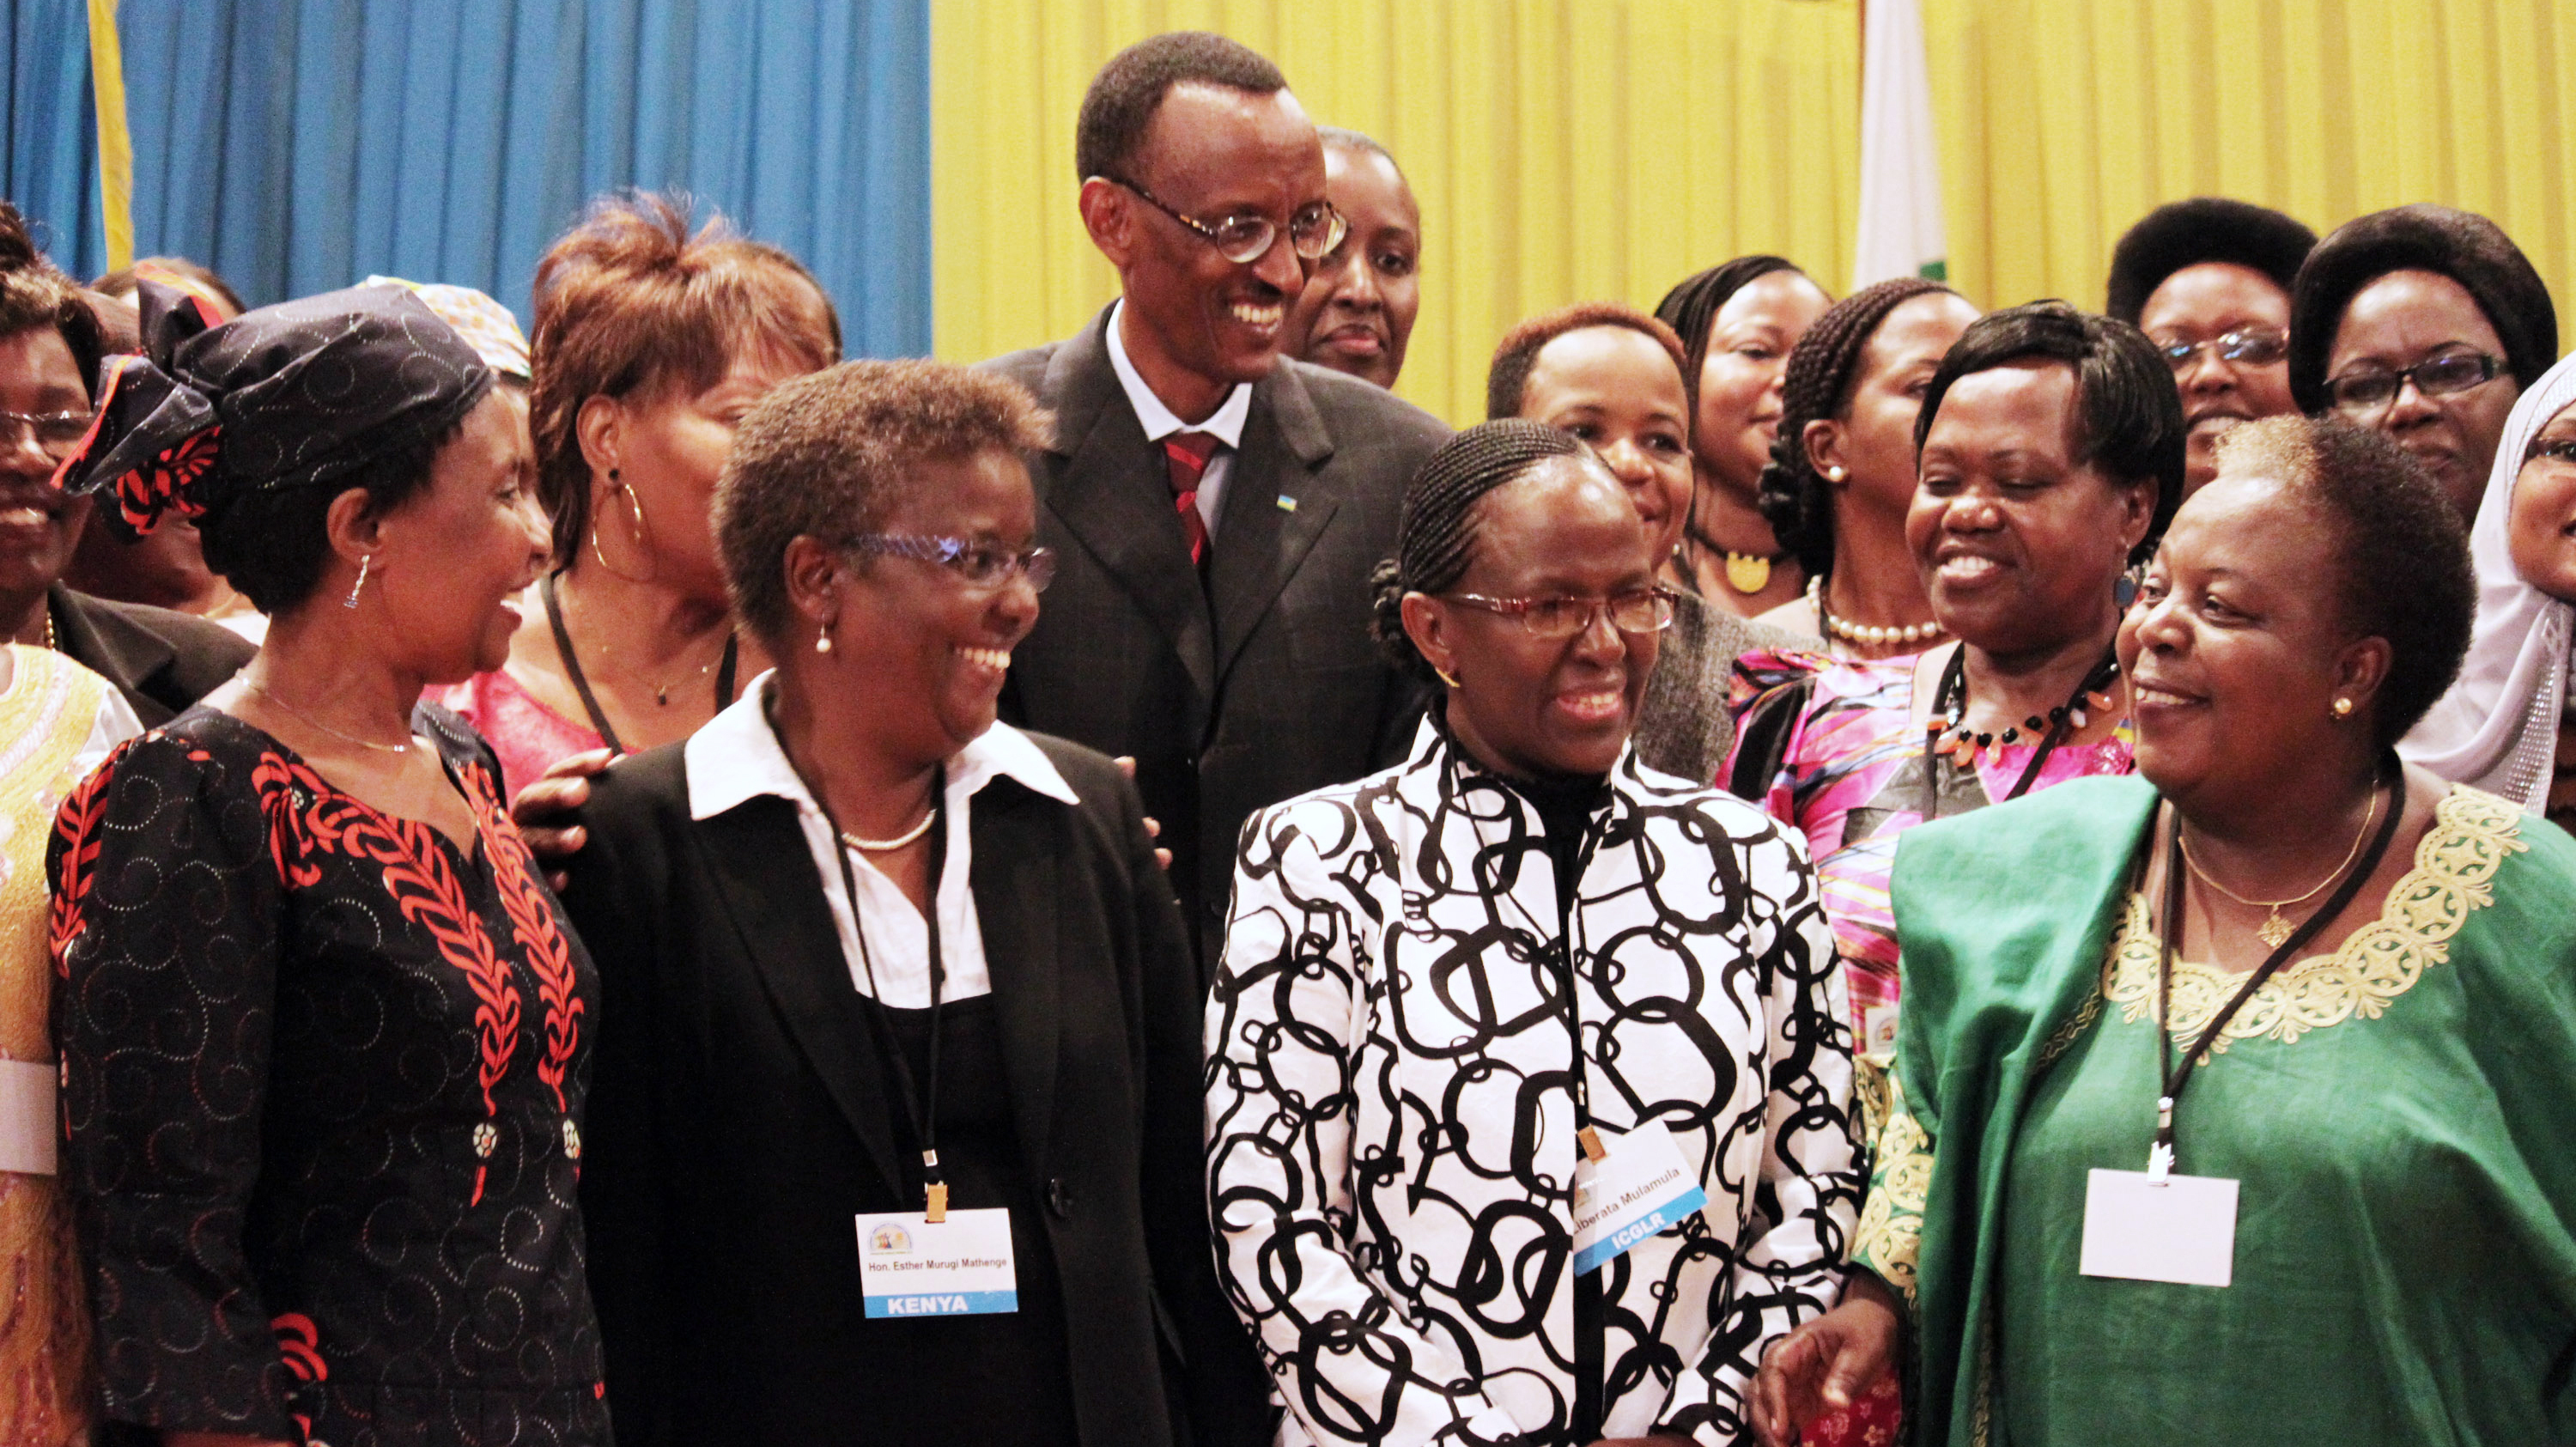 Rwandan President Paul Kagame takes part in a conference on the role of women at the nation's Parliament in the capital, Kigali, in 2010. Women in Rwanda account for 64 percent of the lower house of Parliament -- a higher percentage than in any other country.